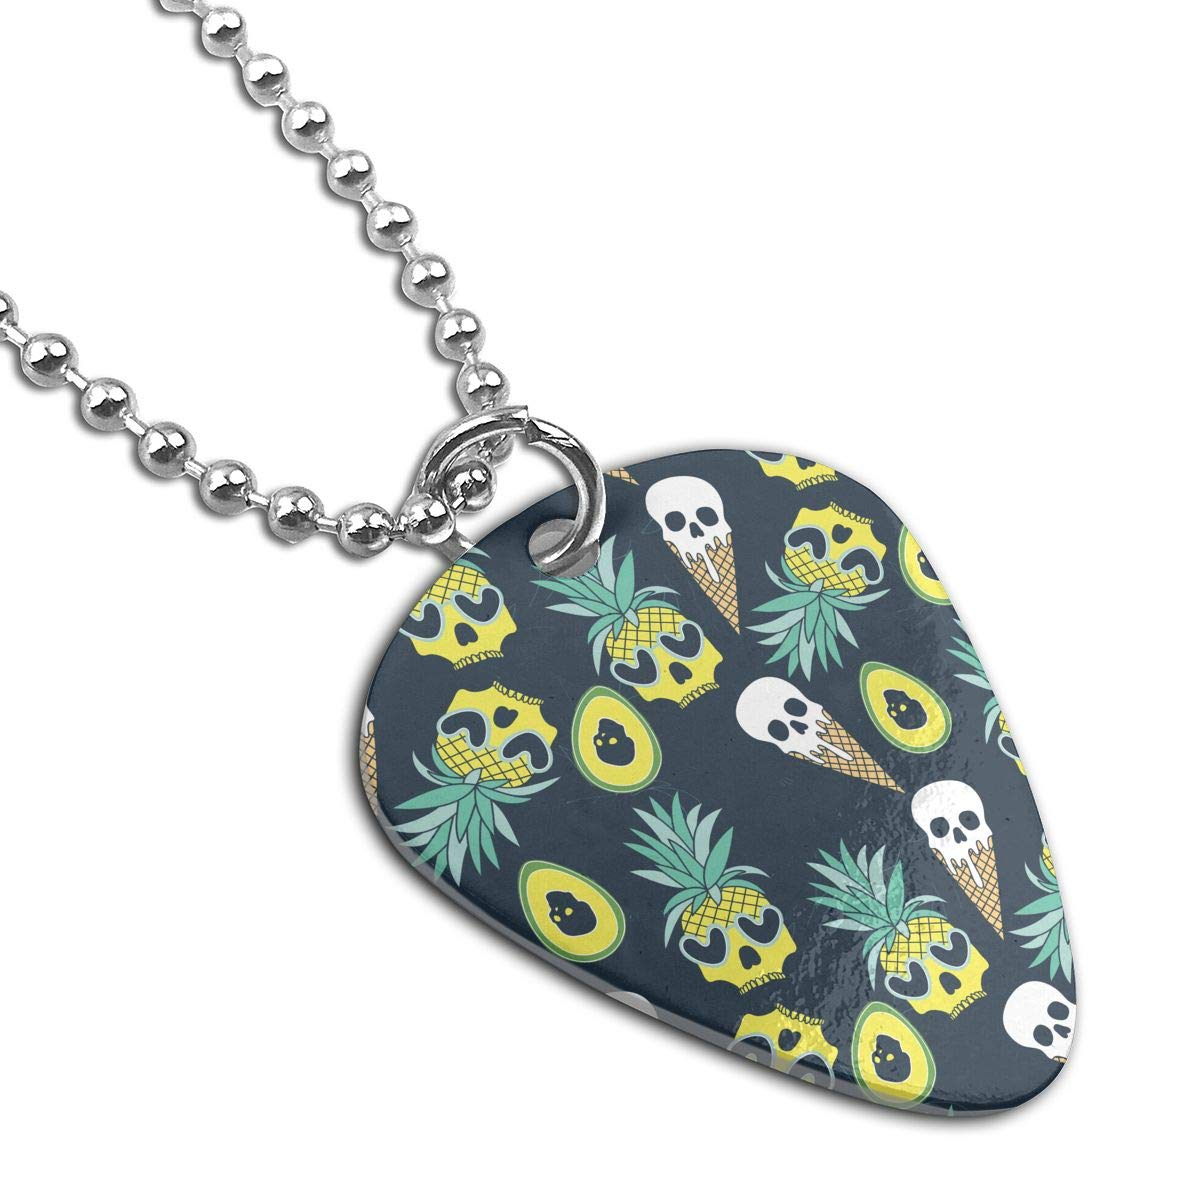 BLACK SP Pineapple Skull Personalized Custom Adjustable Chain Necklace with Chain Silvery for Family